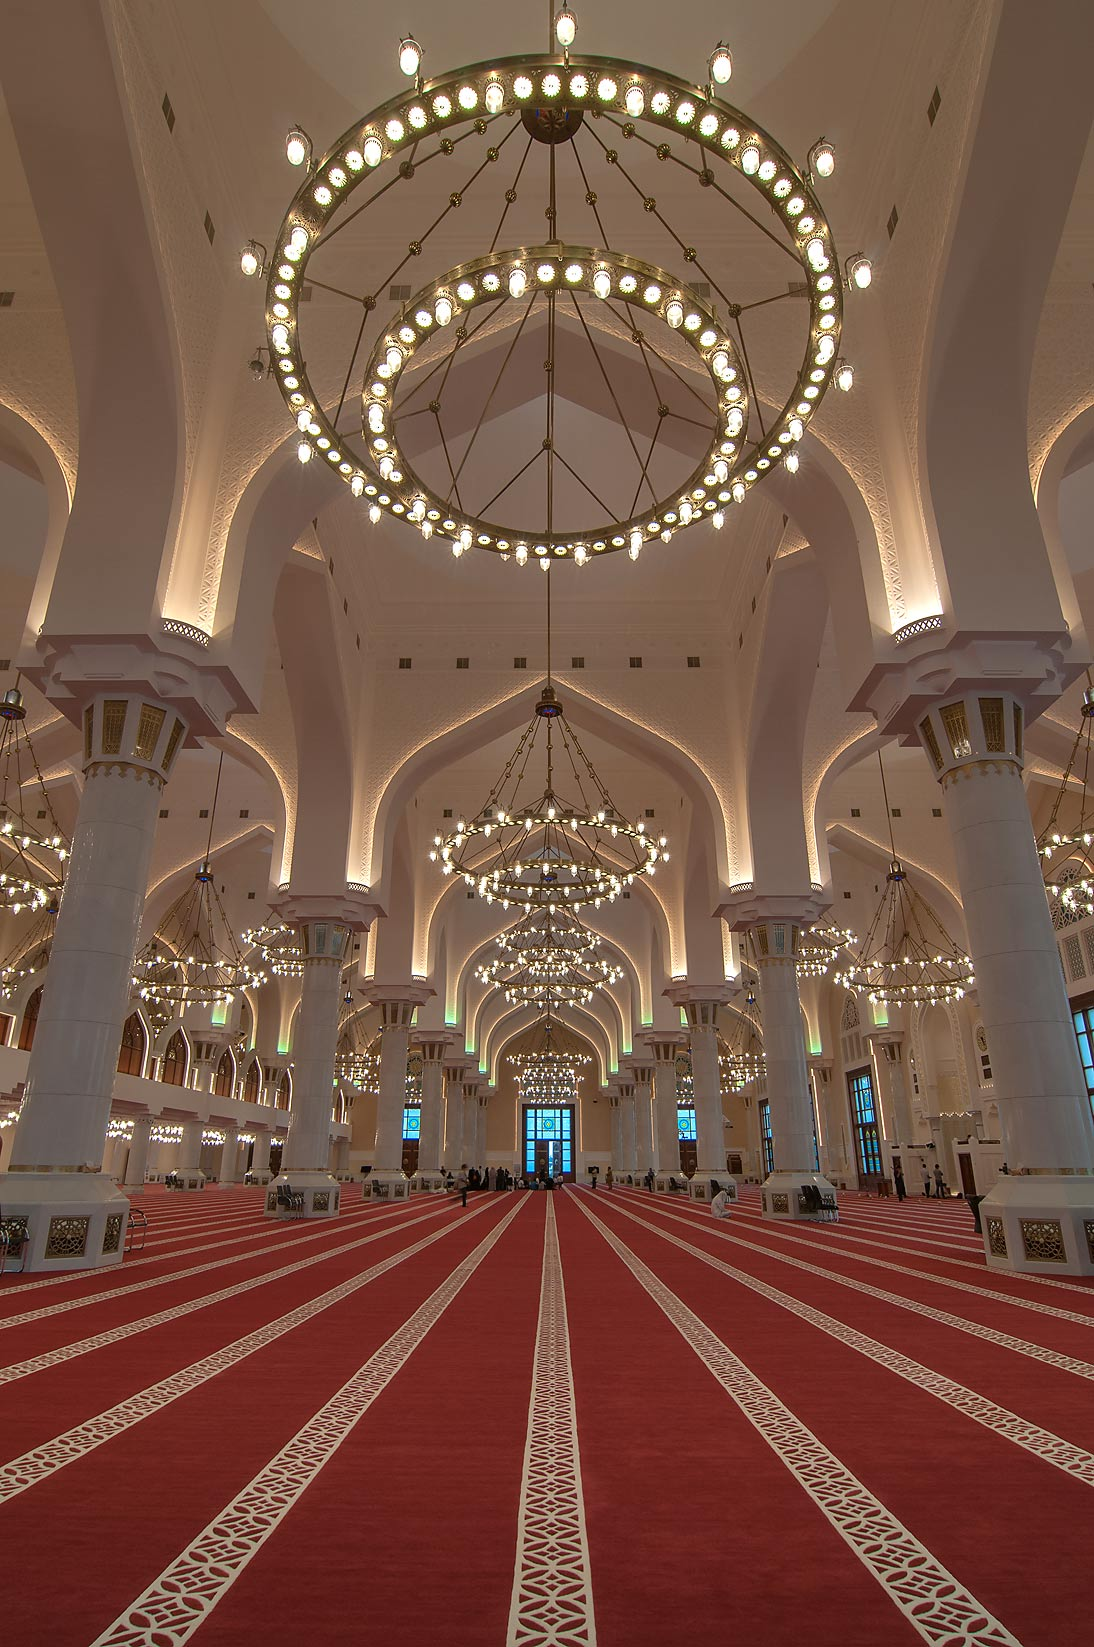 Carpet and chandelier of prayer hall (musallah...Ibn Abdul Wahhab Mosque). Doha, Qatar